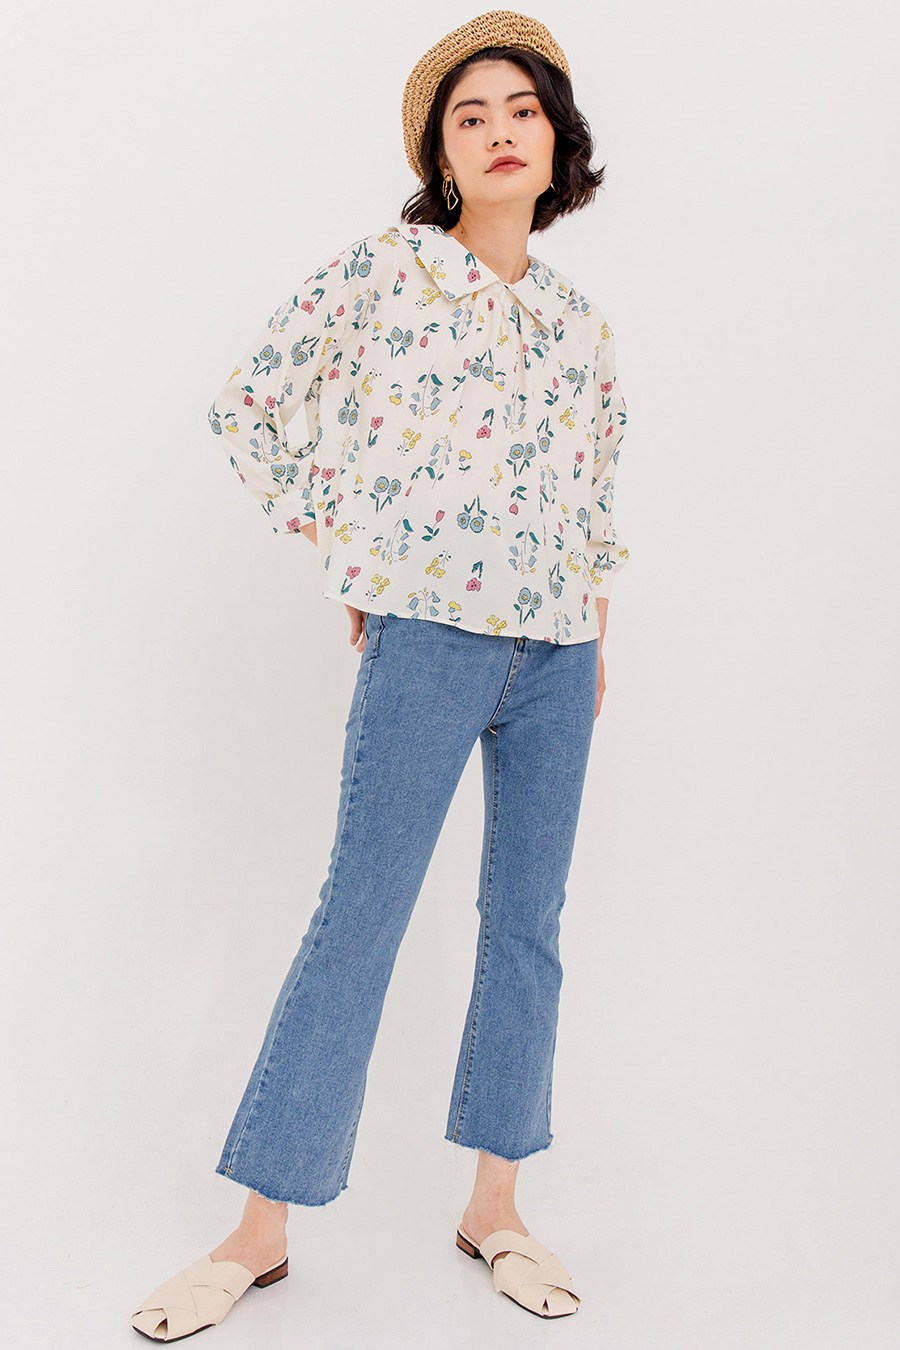 *BO* ROLLA FLORAL PRINTED BLOUSE - IVORY CREAM